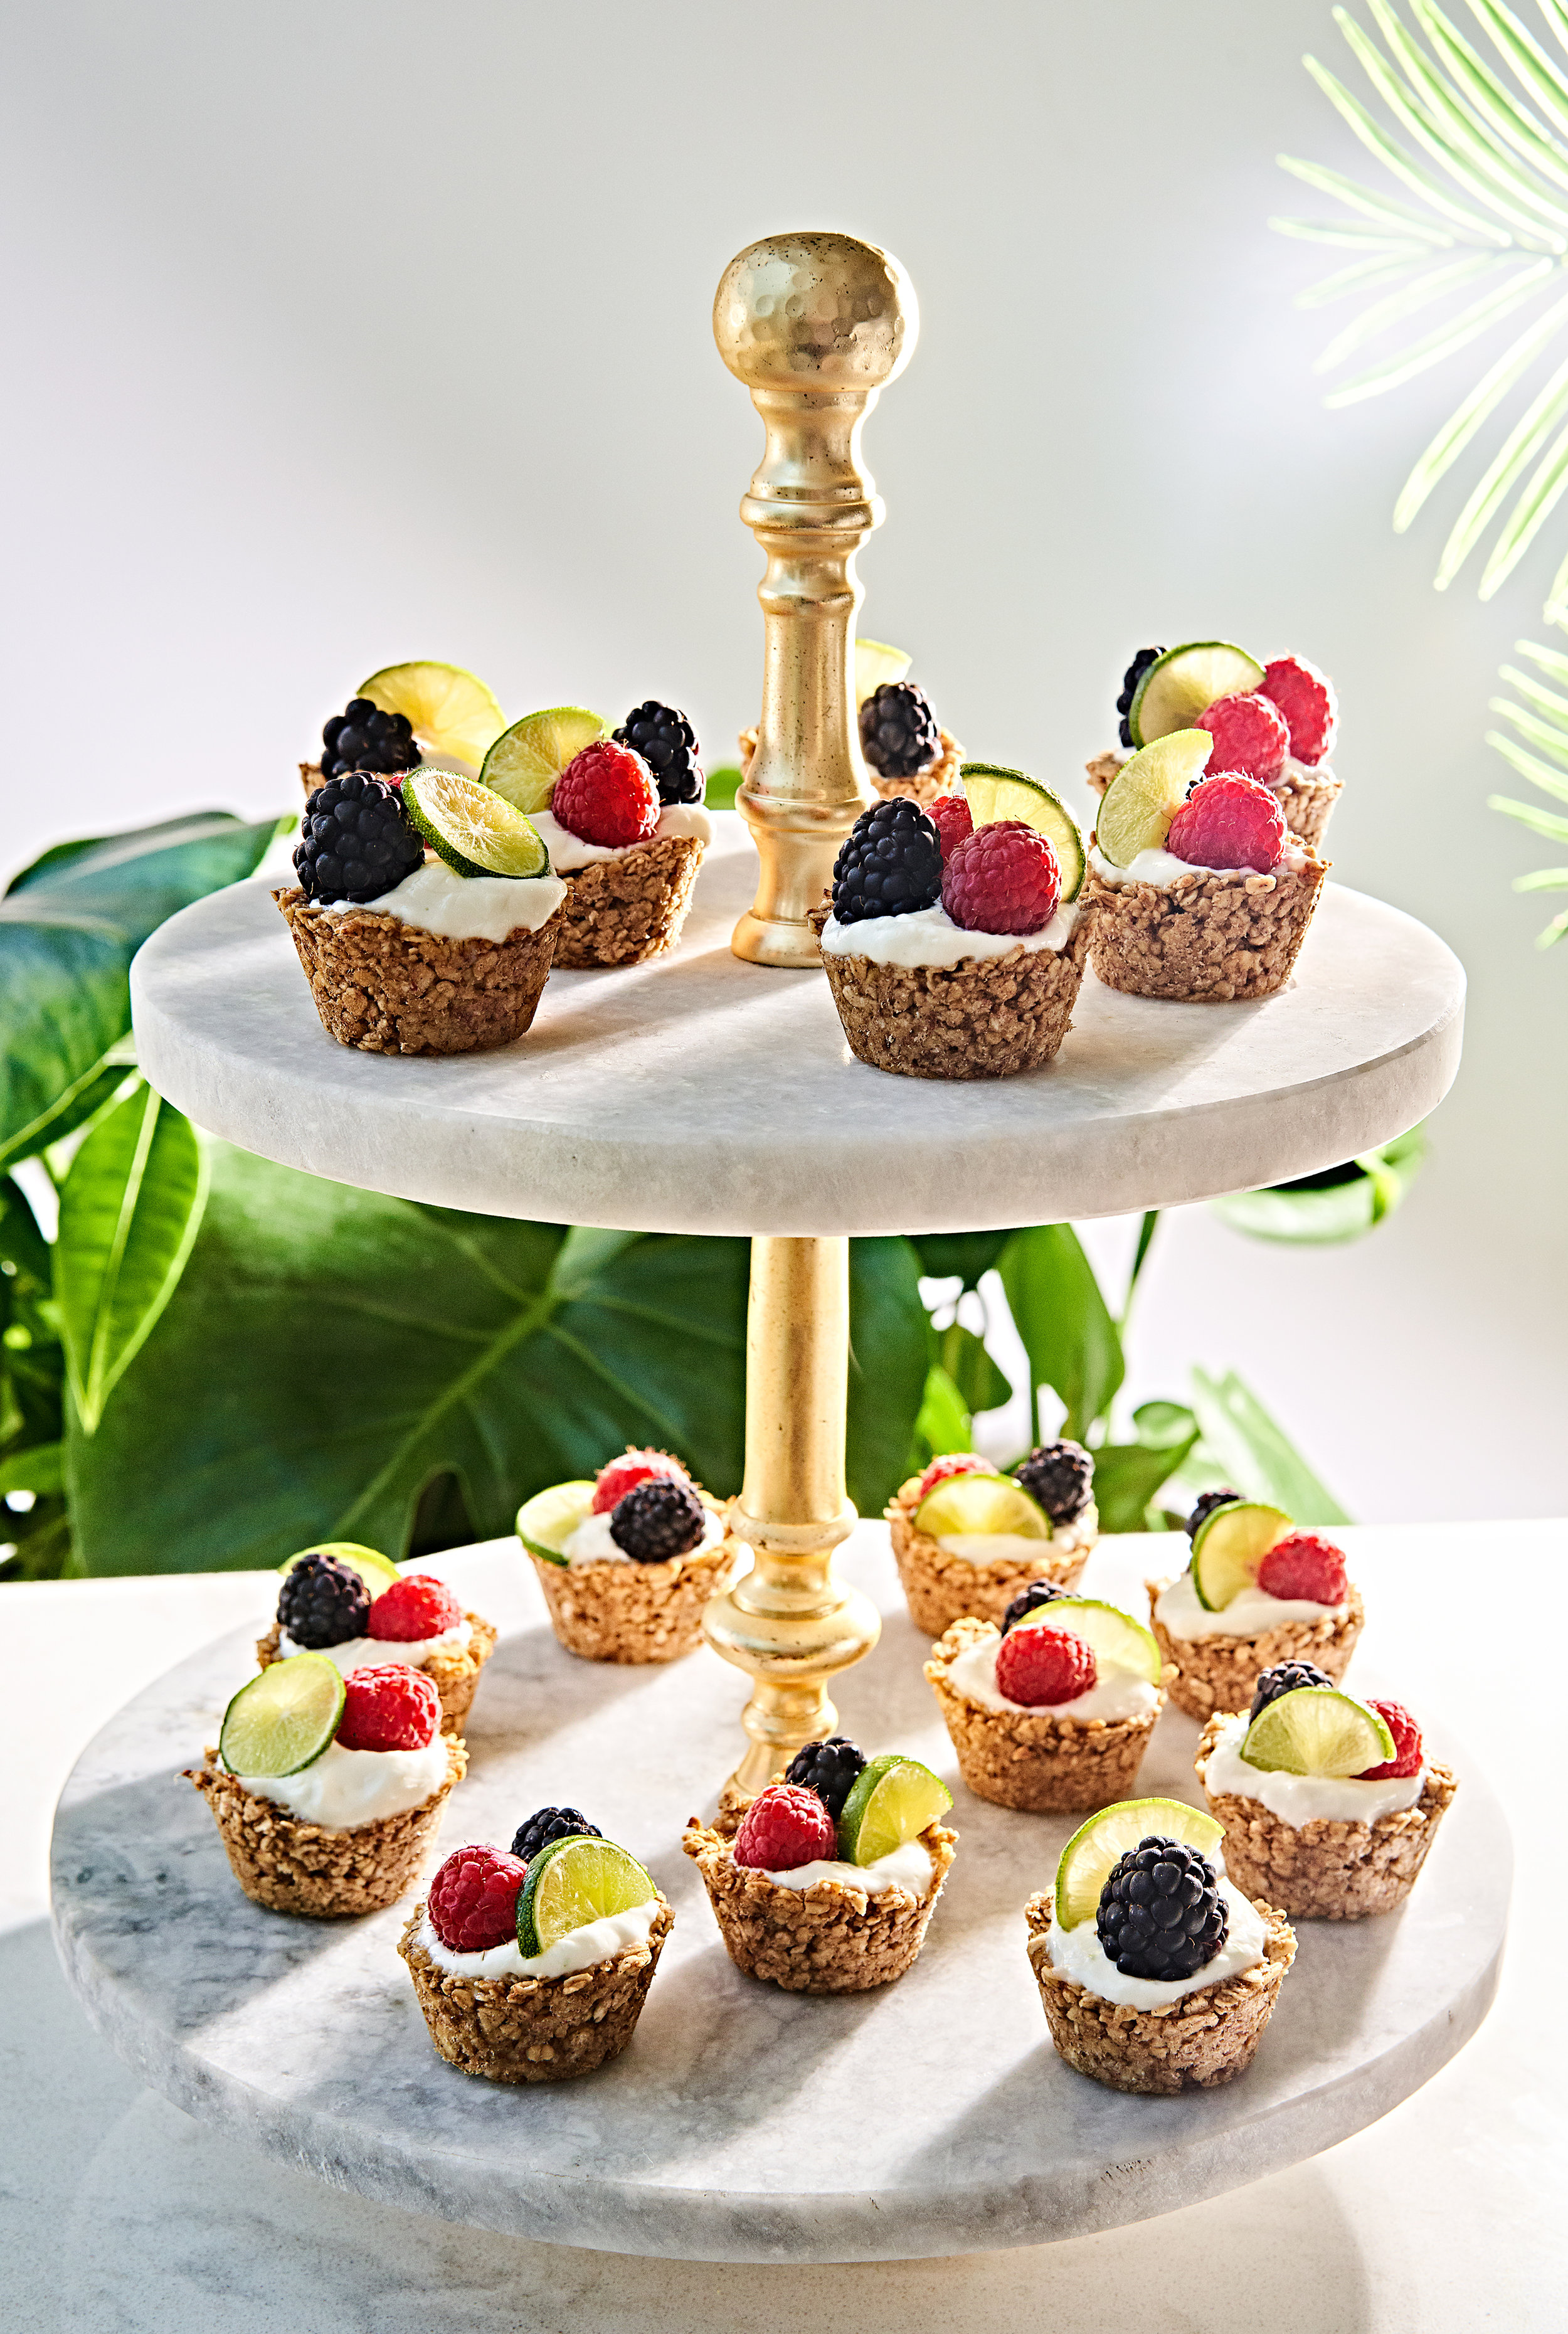 Yogurt topped granola cups with berries